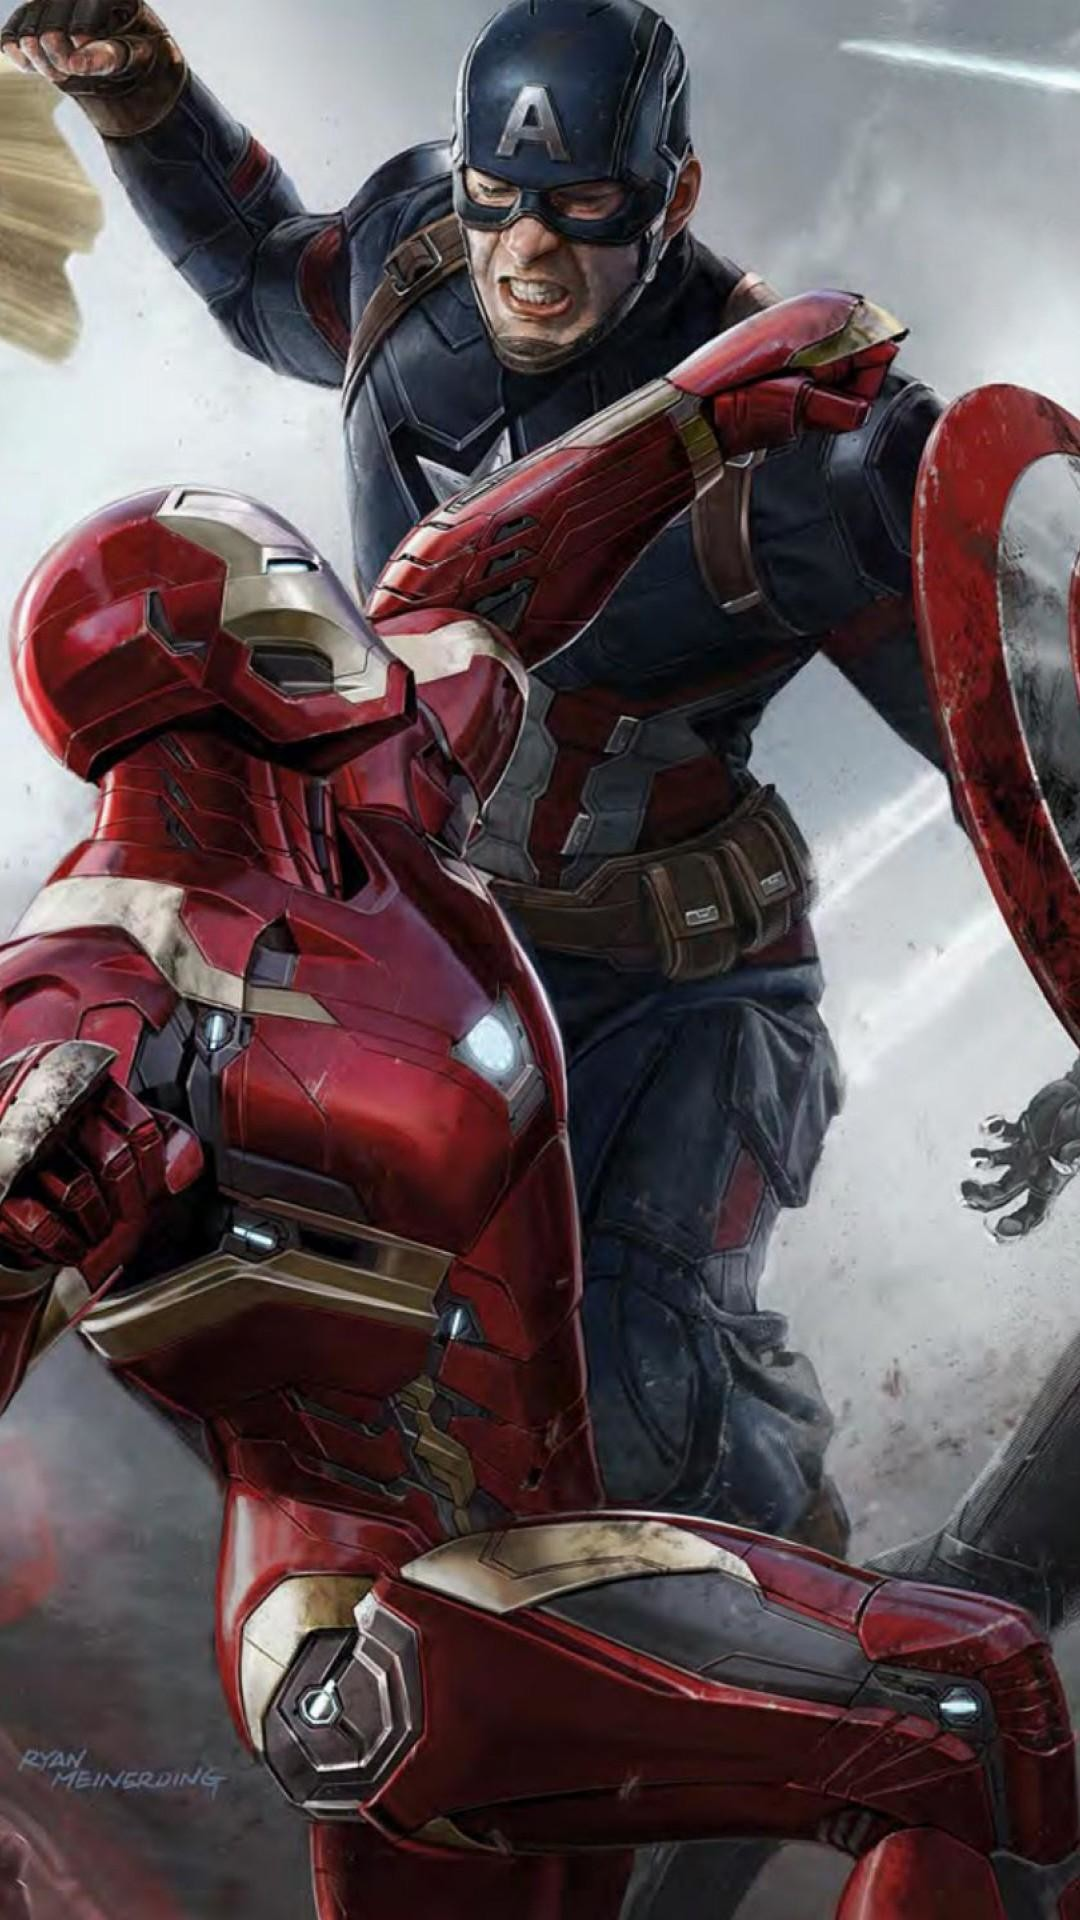 wallpaper.wiki-Marvel-Image-HD-for-Iphone-PIC-